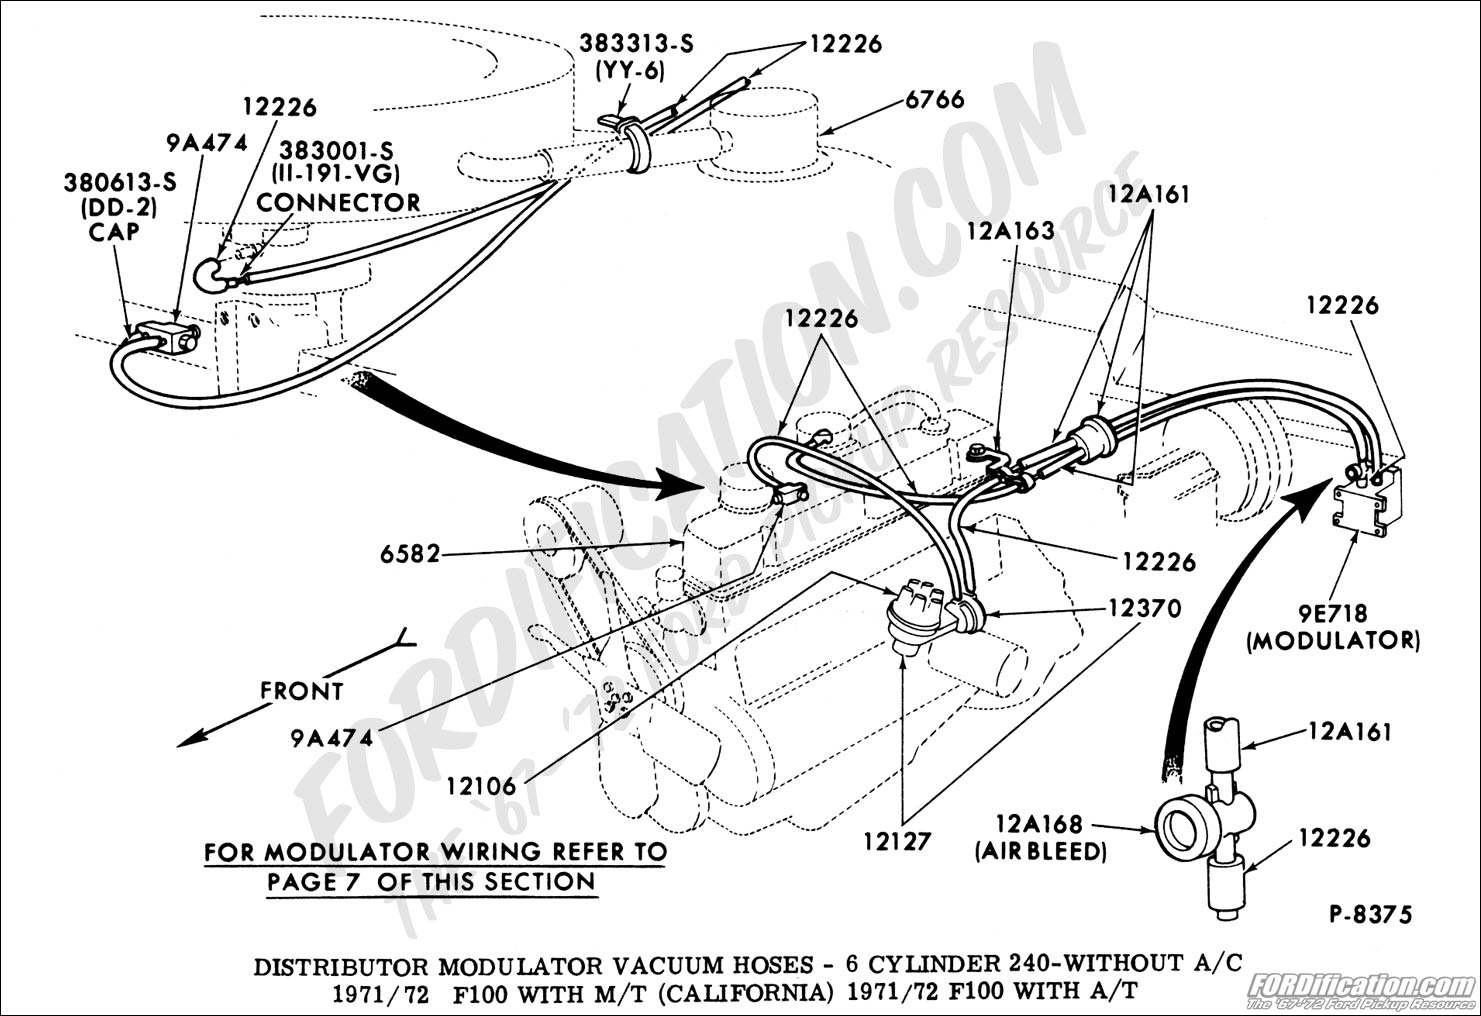 1965 Ford Falcon Steering Column Wiring Diagram moreover Wiring Diagram For Ford 1600 Tractor as well Schematics e together with Schematics e together with Gmc Truck Exhaust System Diagram. on 1966 mustang engines